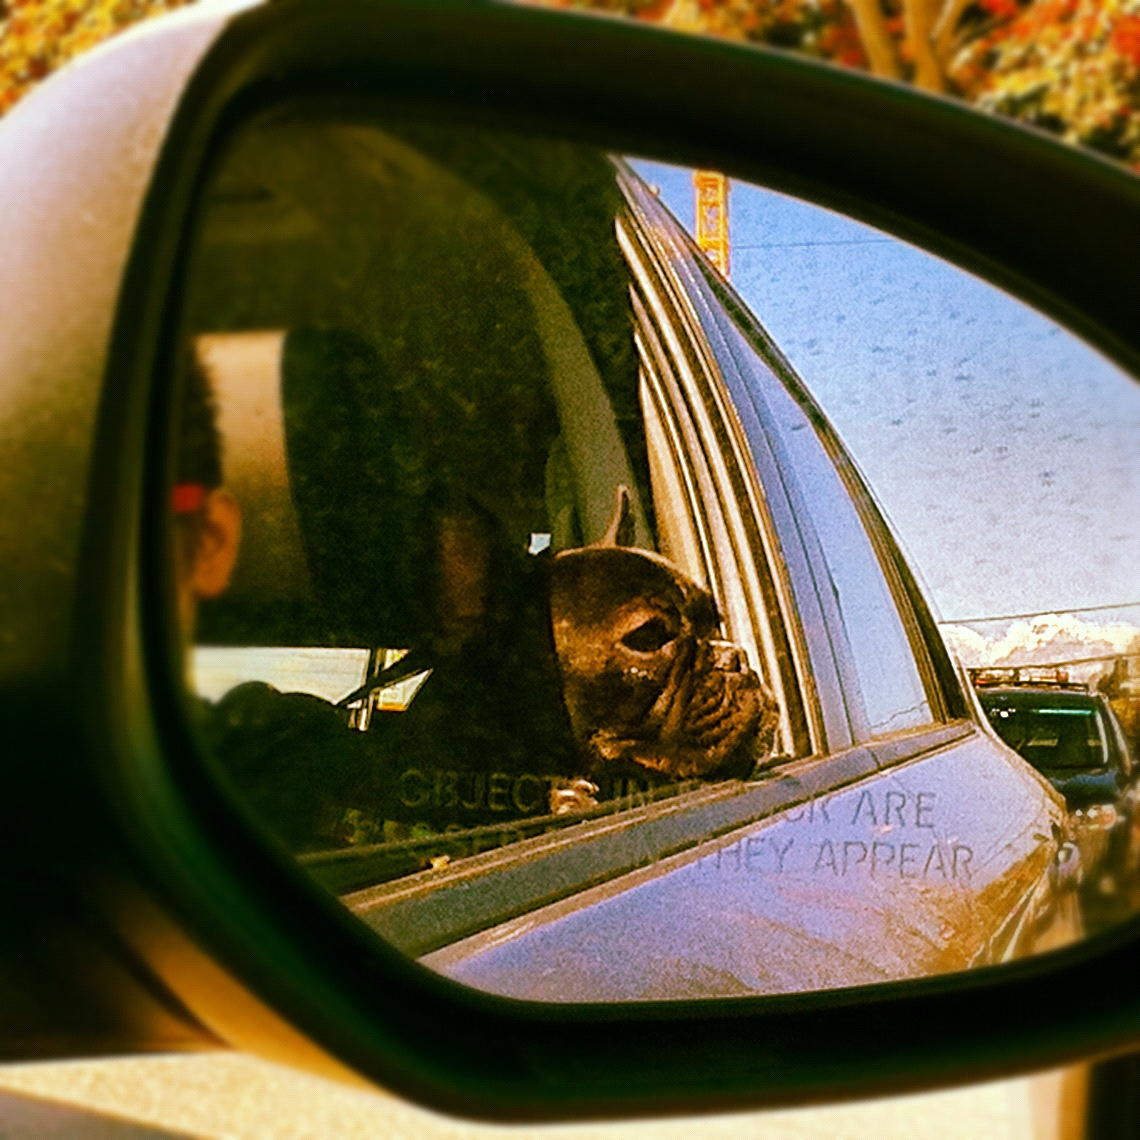 When Dogs Get Car Sick, Here's What To Do